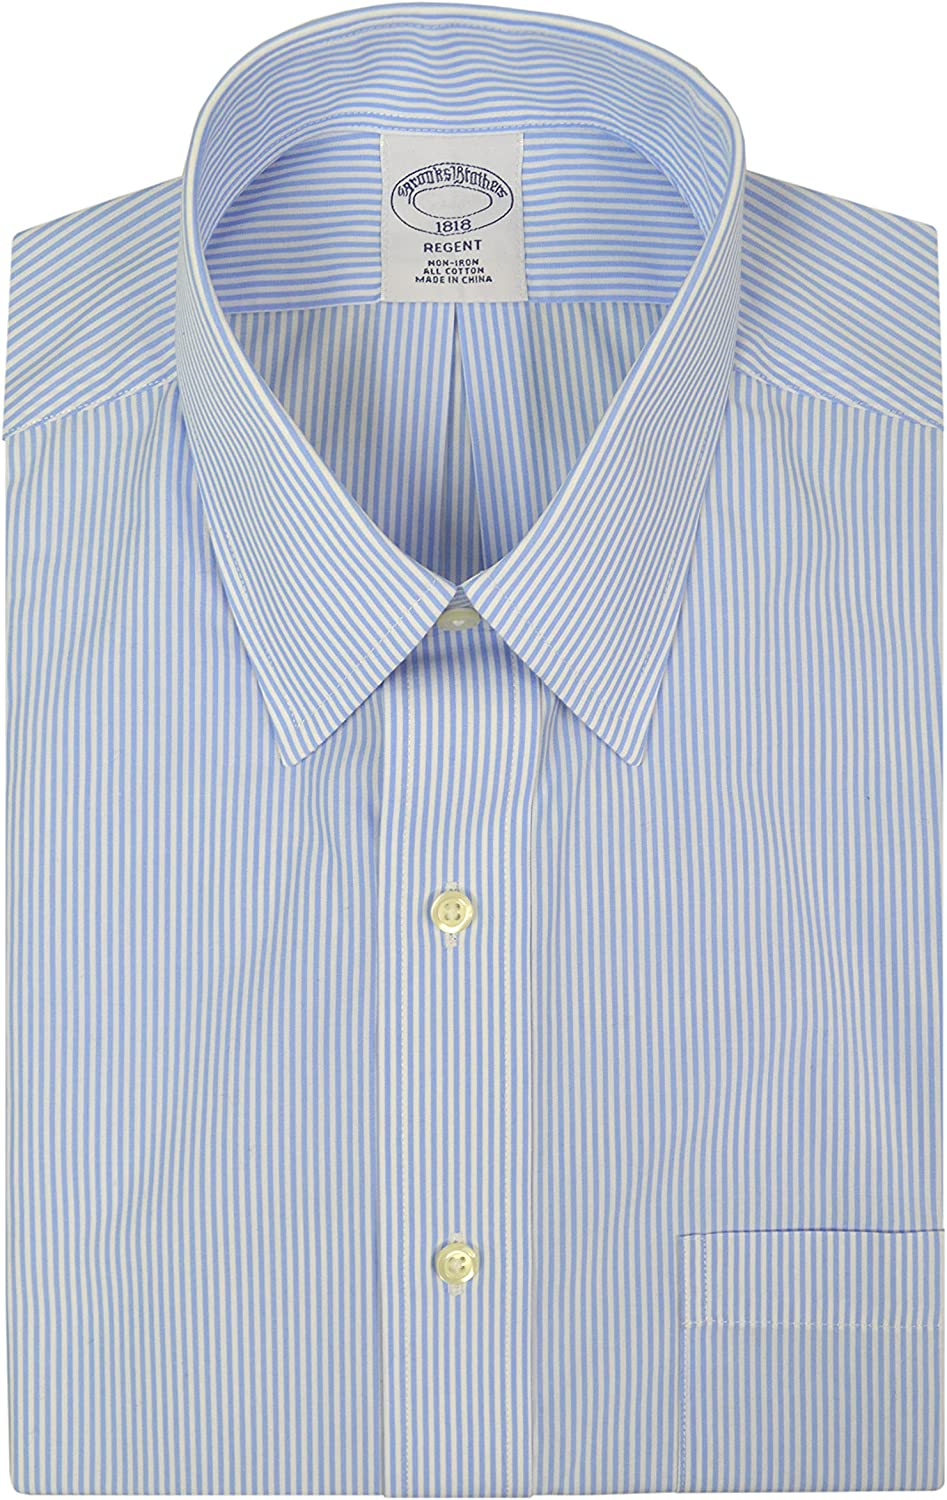 Brooks Brothers Men's Regent Store Fit OFFicial mail order Cotton Mix Shirt Dress Iron Non